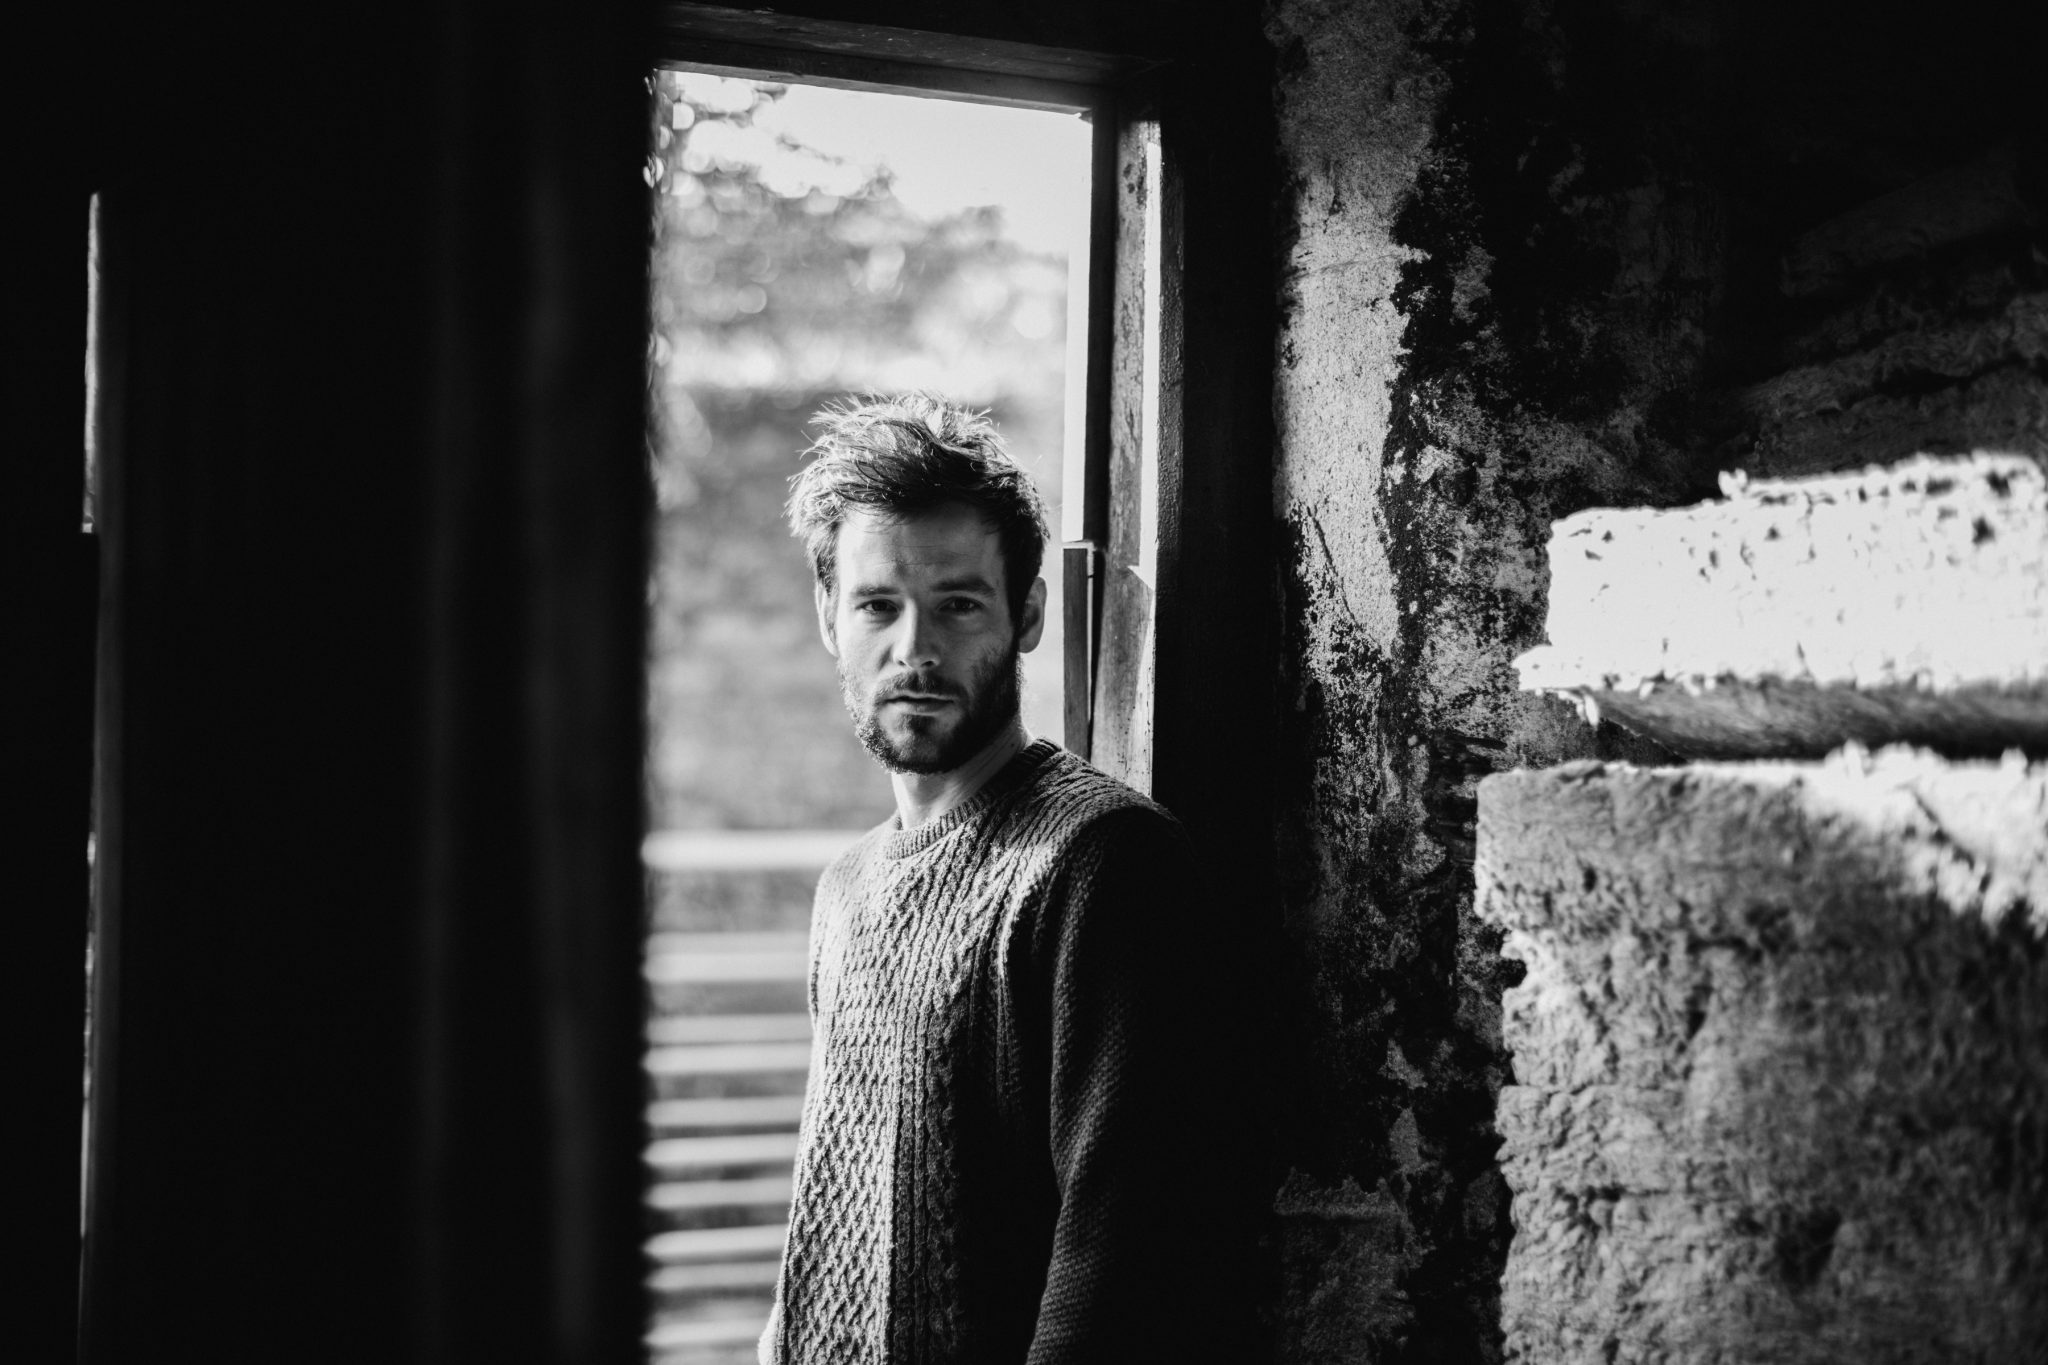 listen - ophelia - by - roo panes - uk - indie music - new music - indie folk - music blog - indie blog - wolf in a suit - wolfinasuit - wolf in a suit blog - wolf in a suit music blog